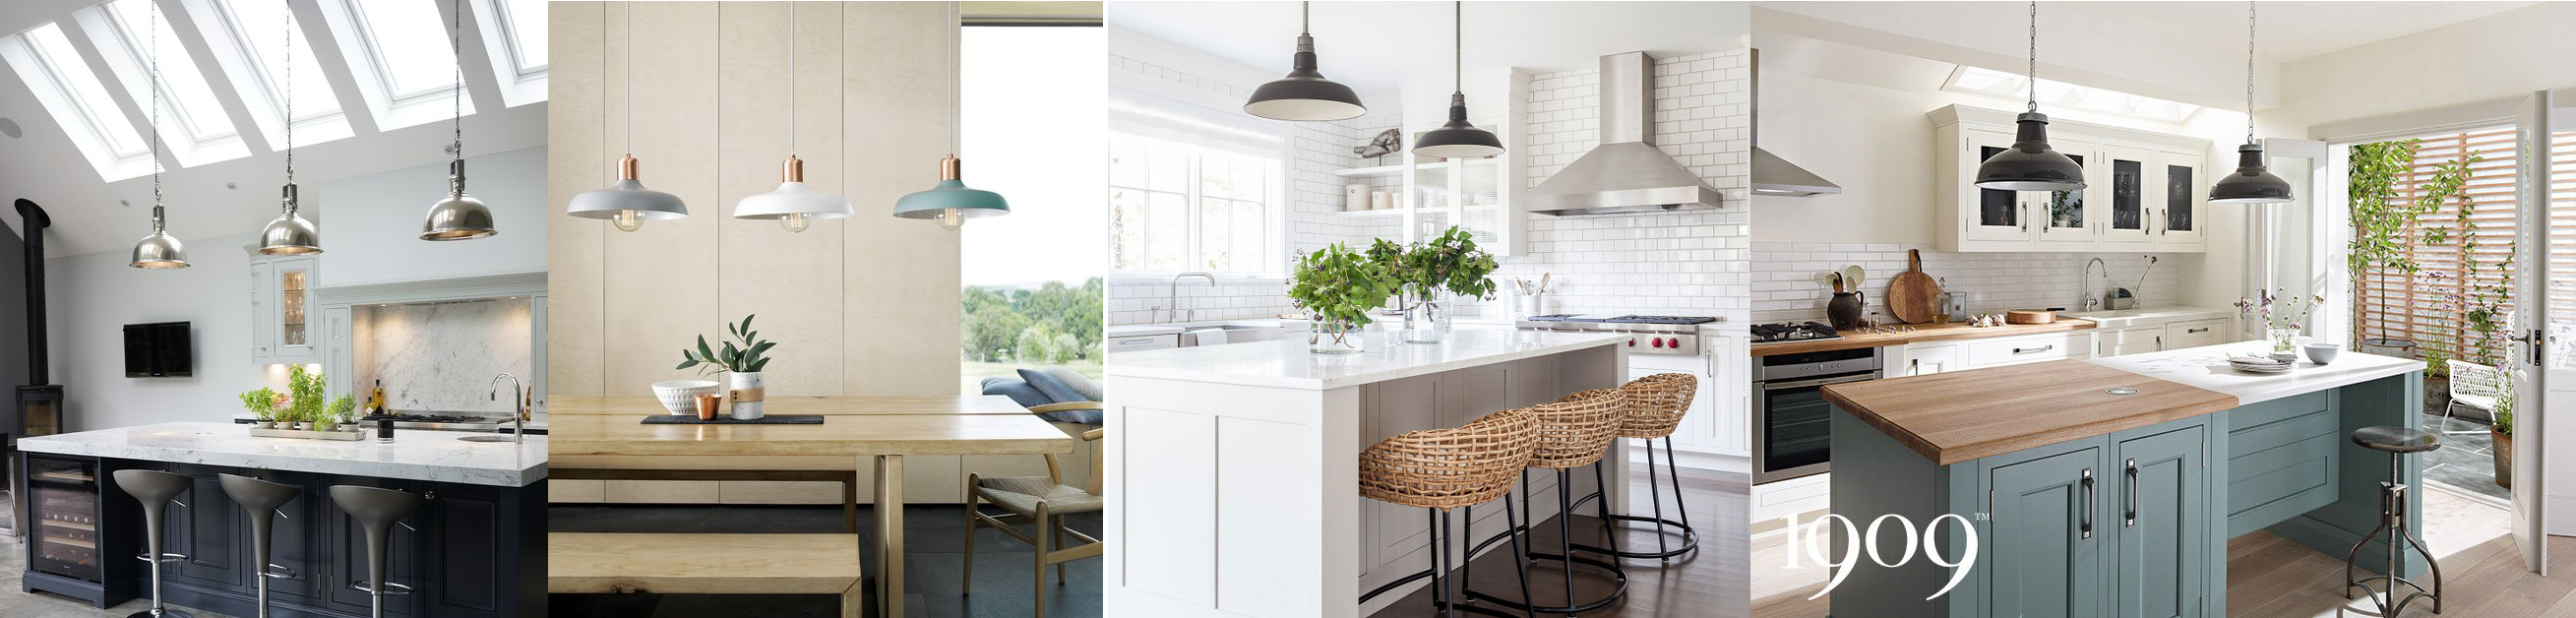 Kitchen Lighting - Accent and General Lighting Inspiration